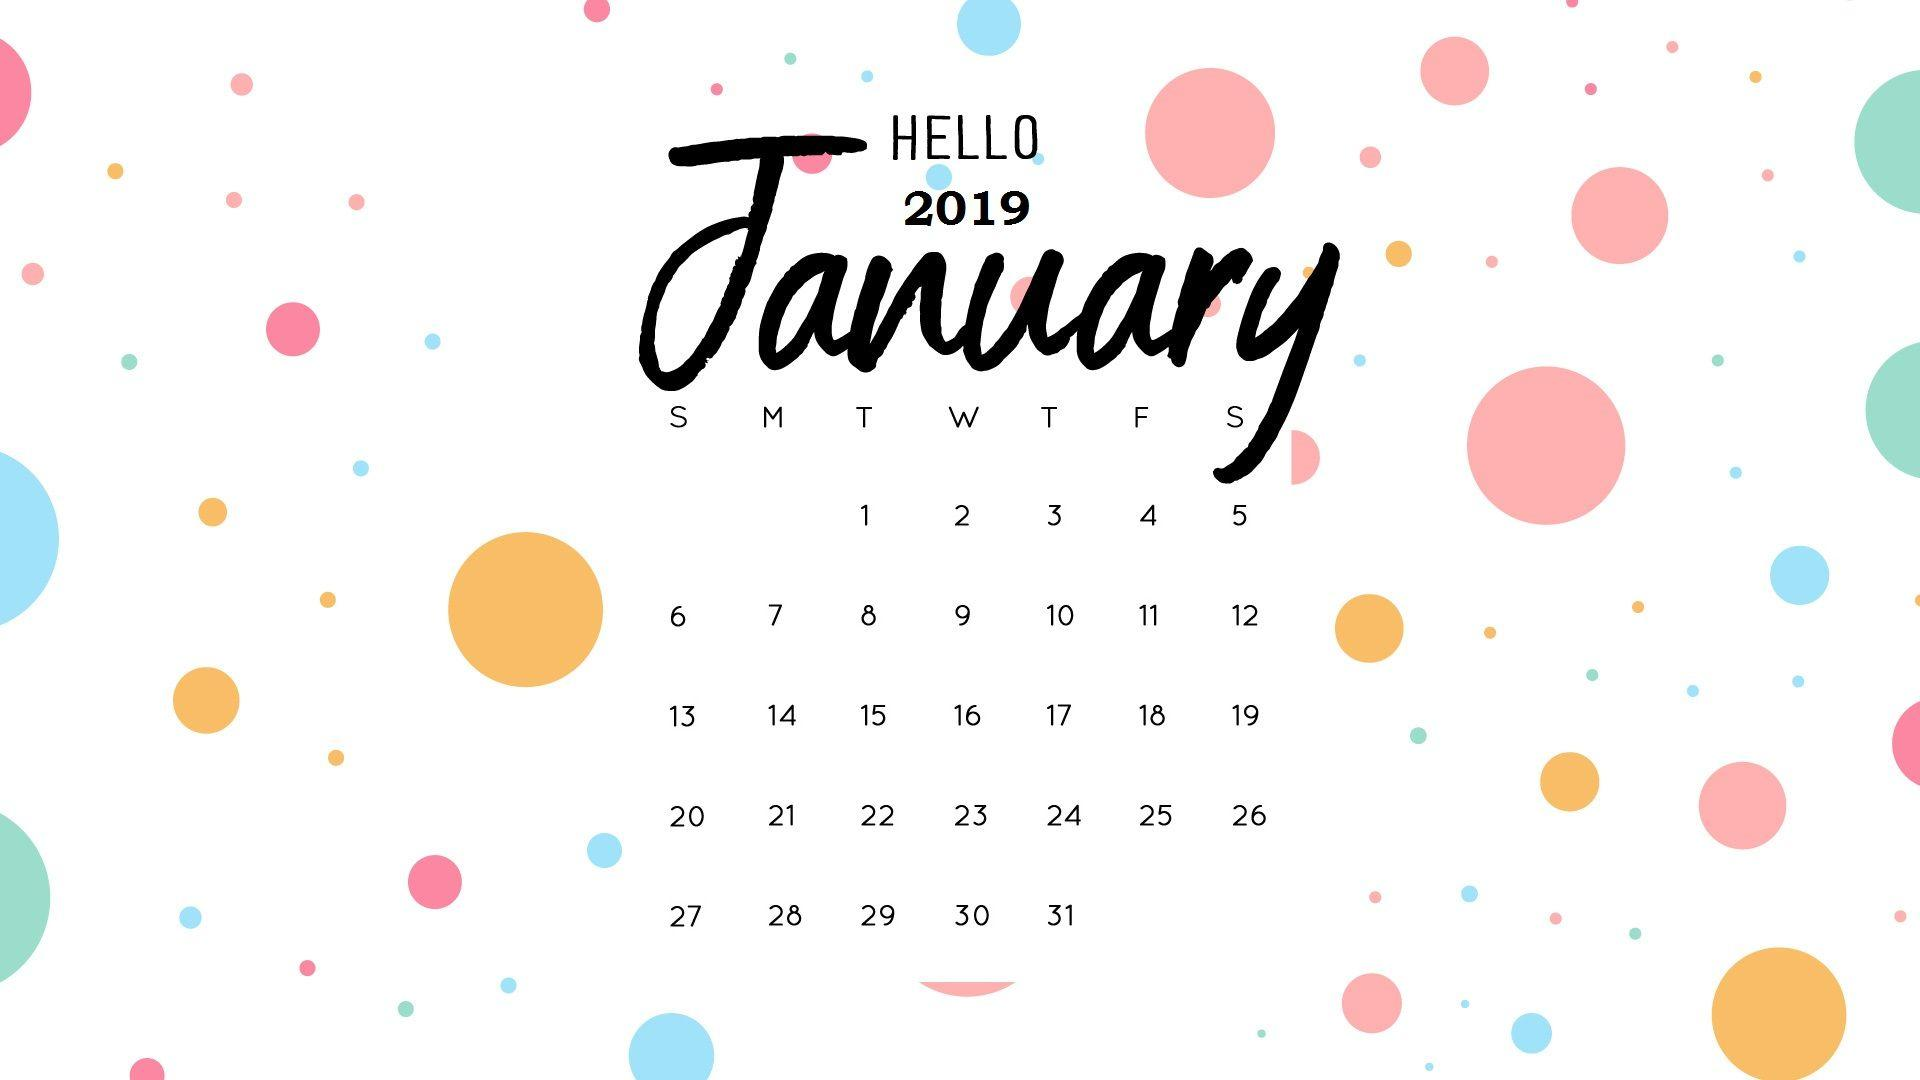 January 2019 Calendar Desktop January 2019 Calendar Wallpapers   Wallpaper Cave